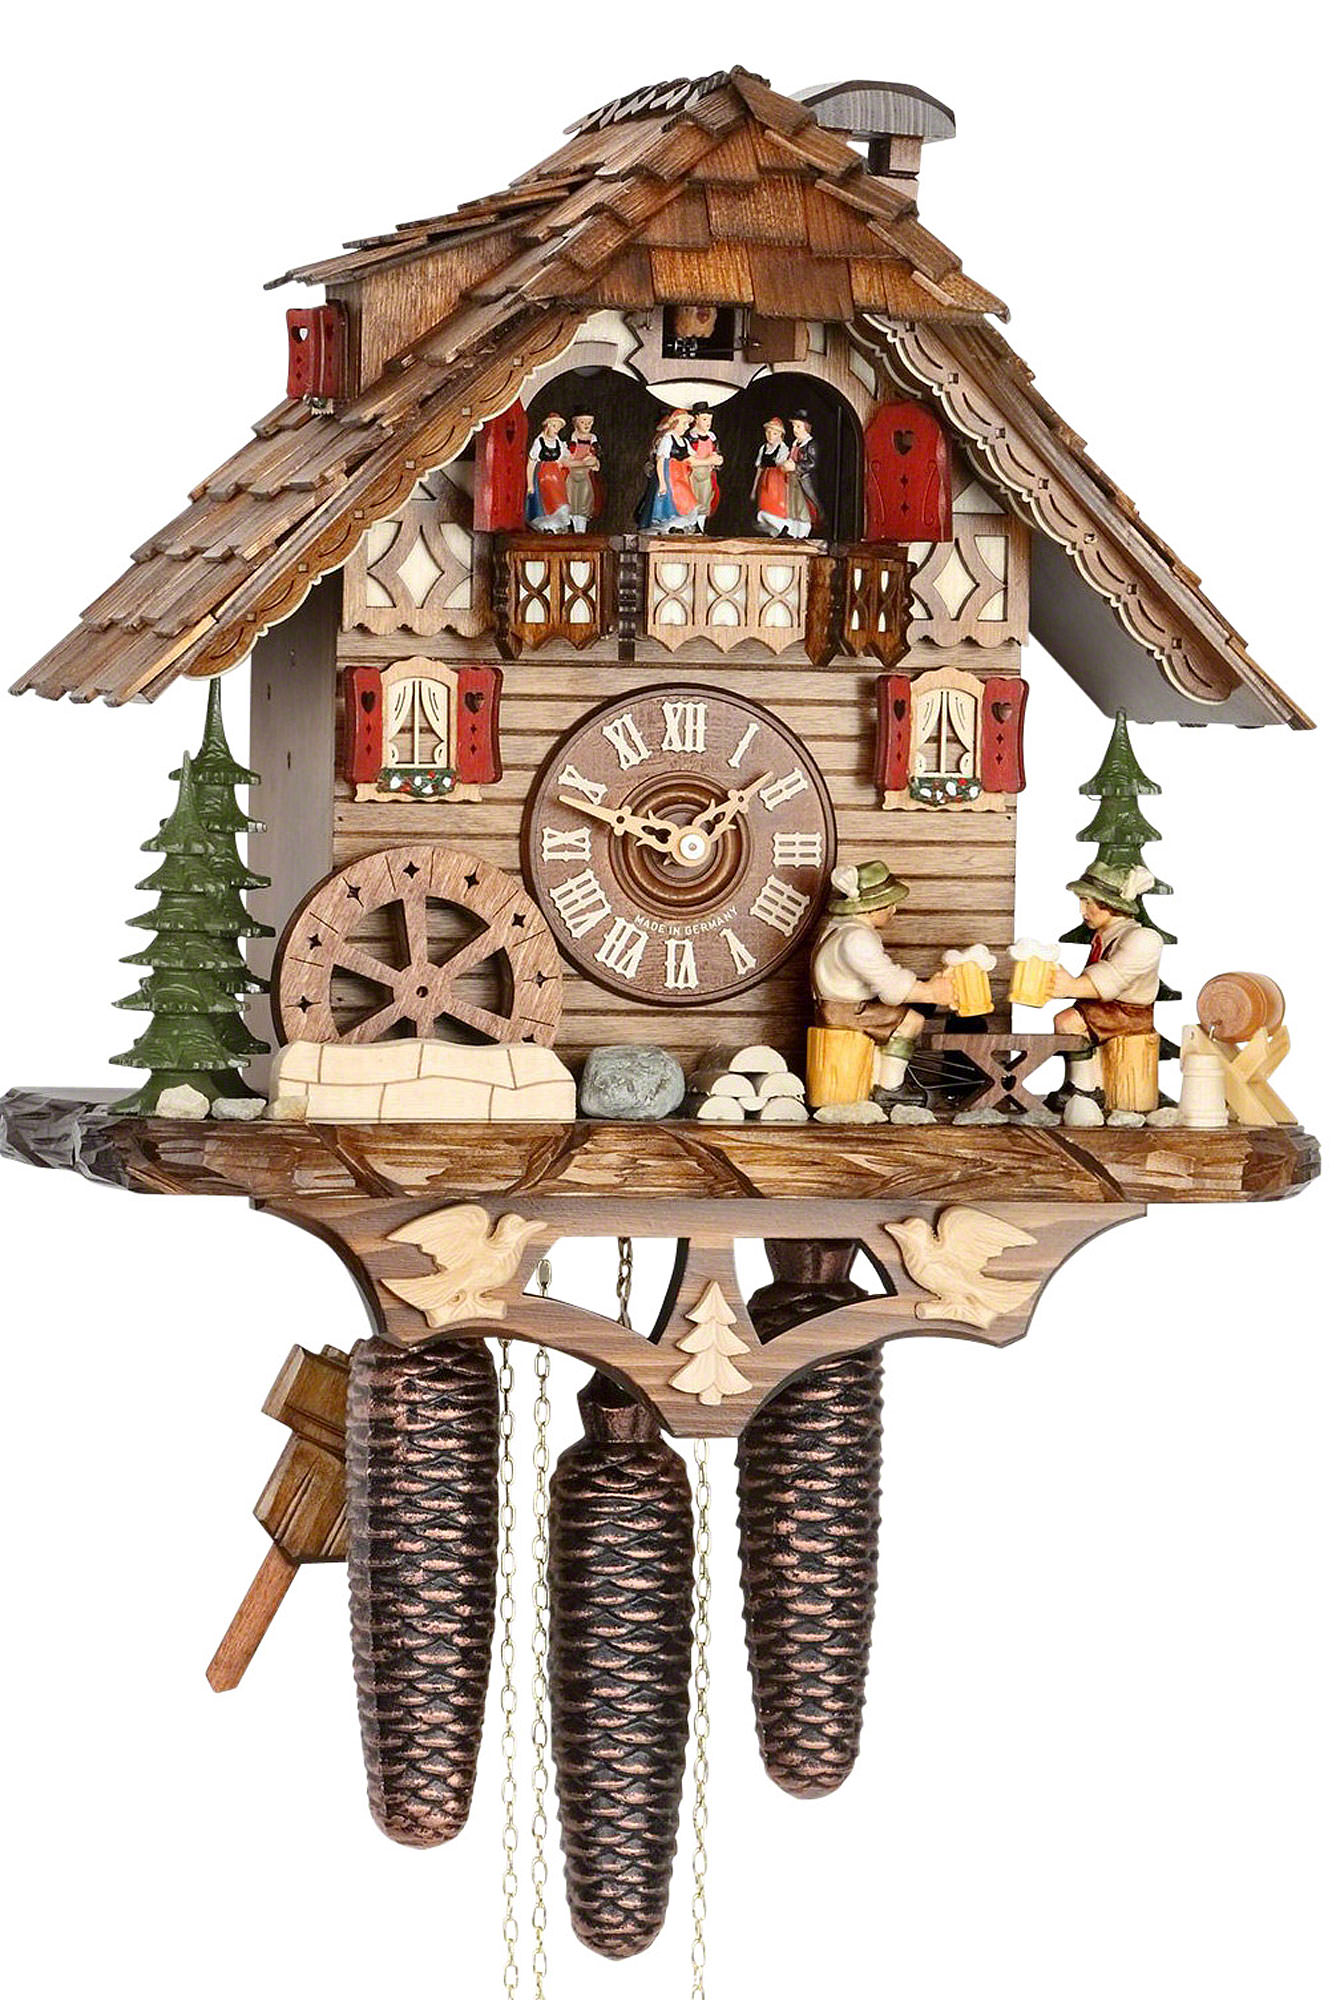 Cuckoo clock 8 day movement chalet style 38cm by hekas How to make a cuckoo clock